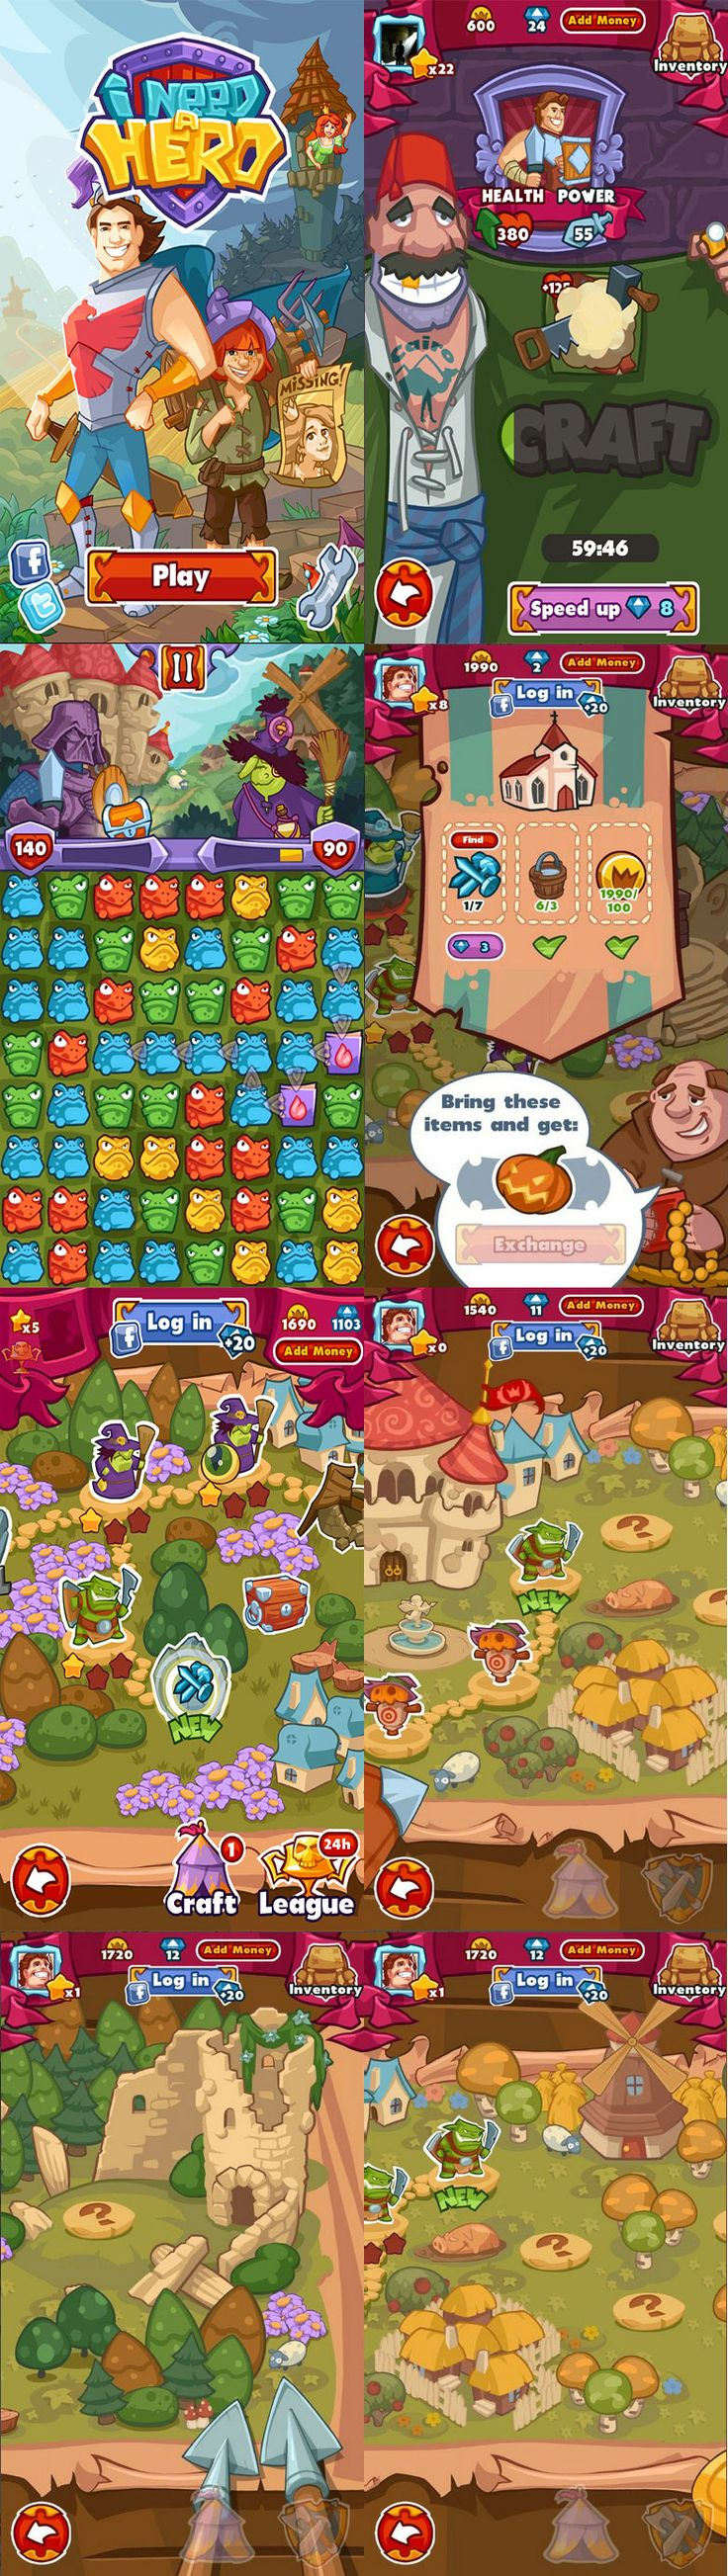 """""""Need a Hero"""" game ui, Android game by Alis Games"""